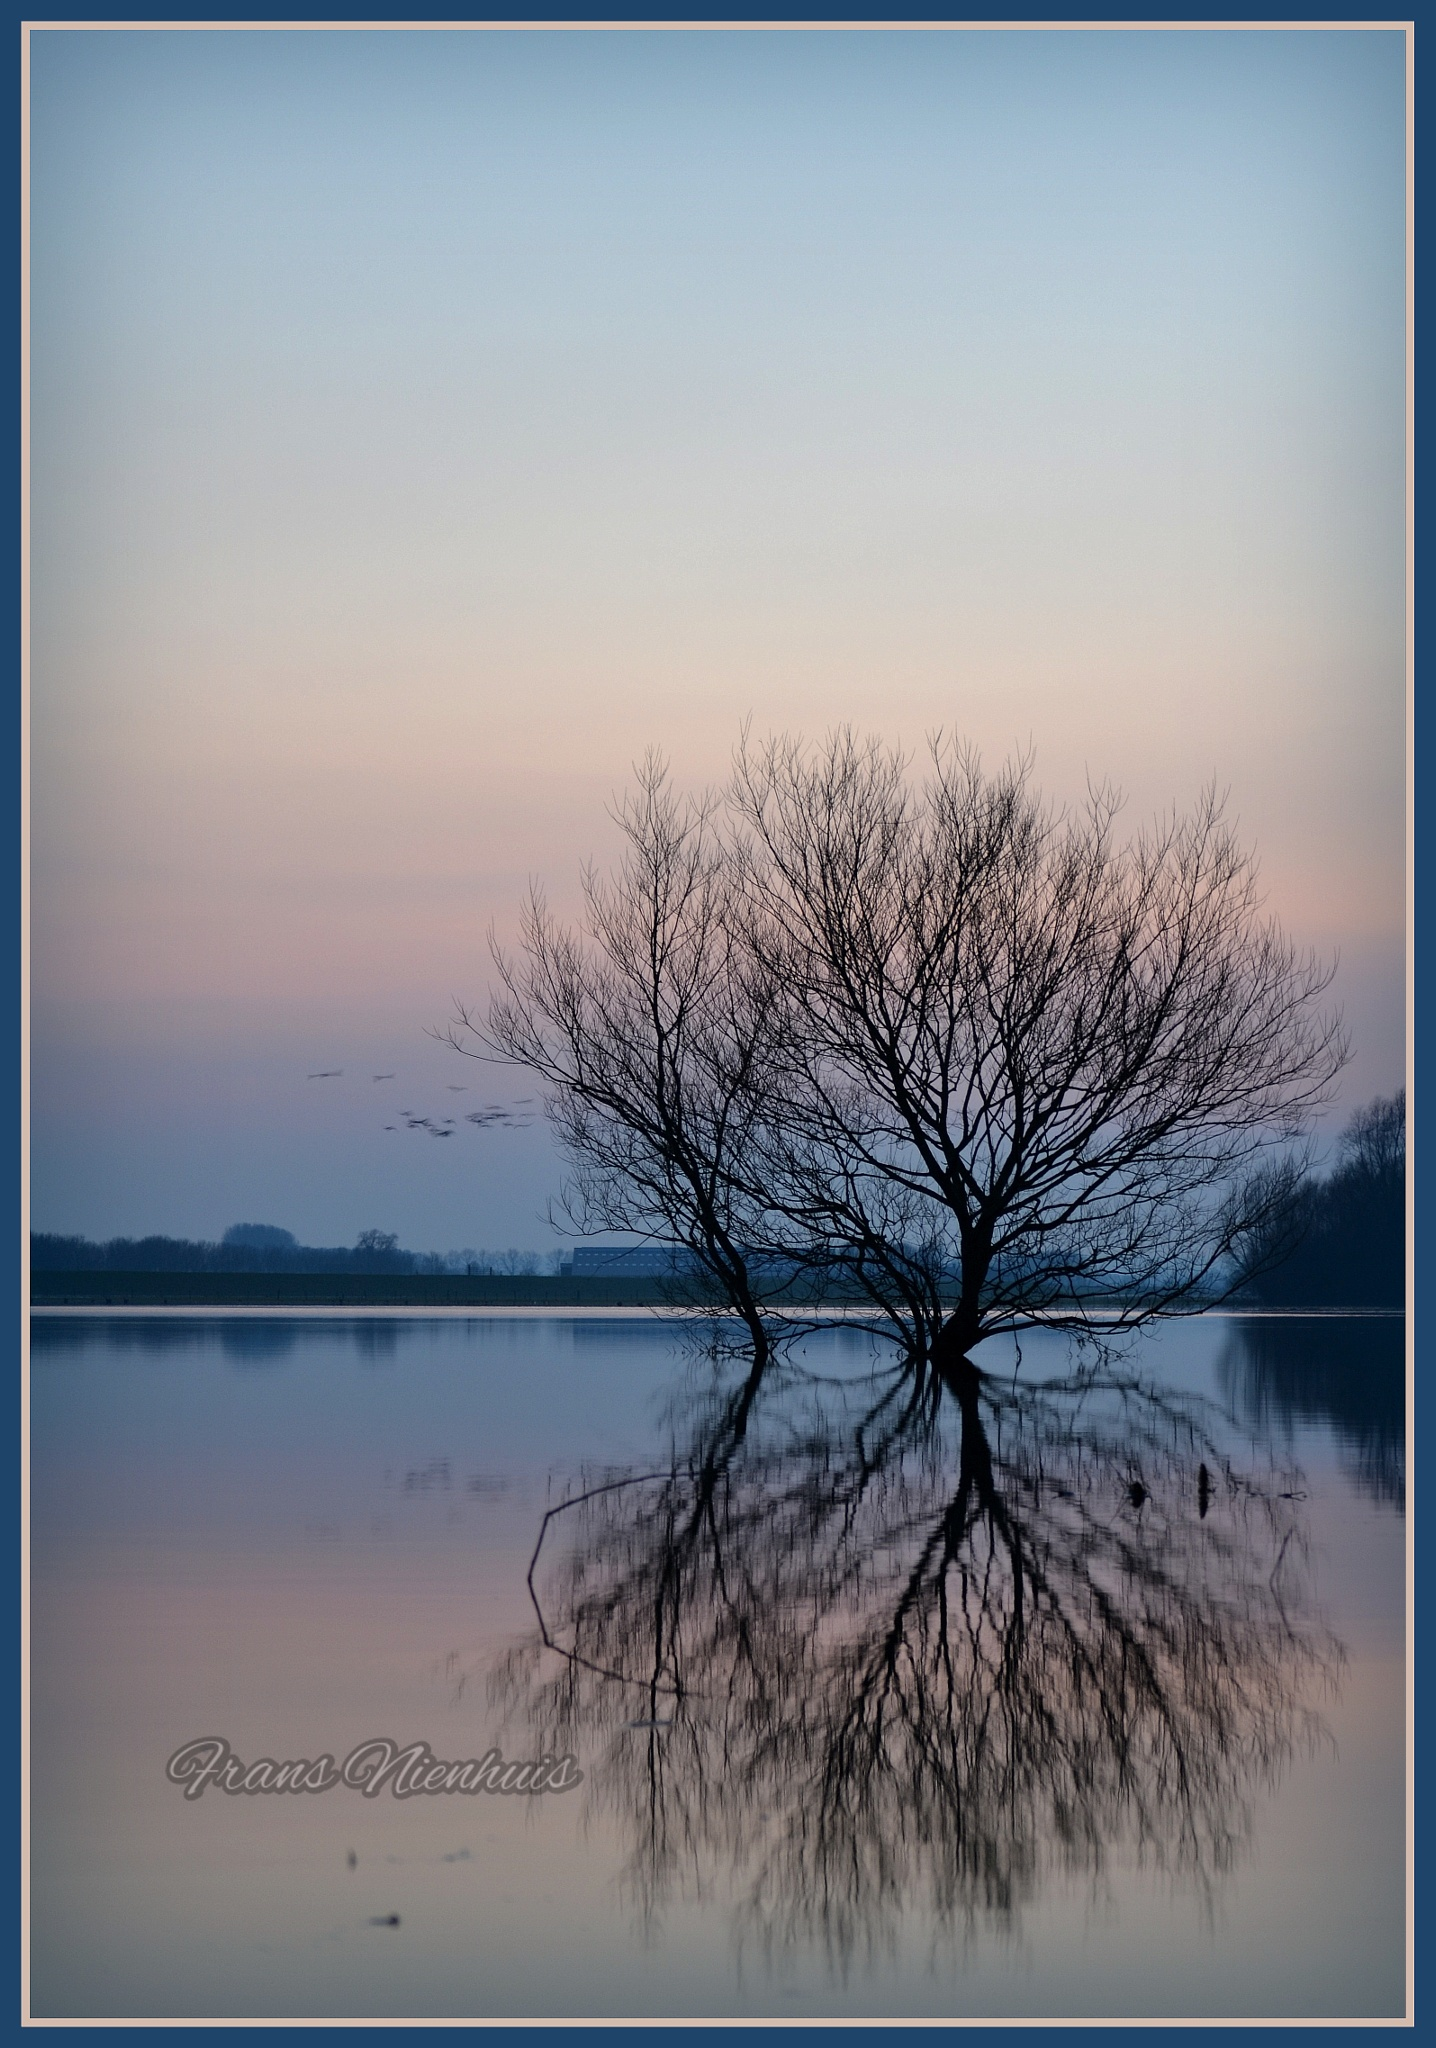 Tranquility in blue  by Frans Nienhuis